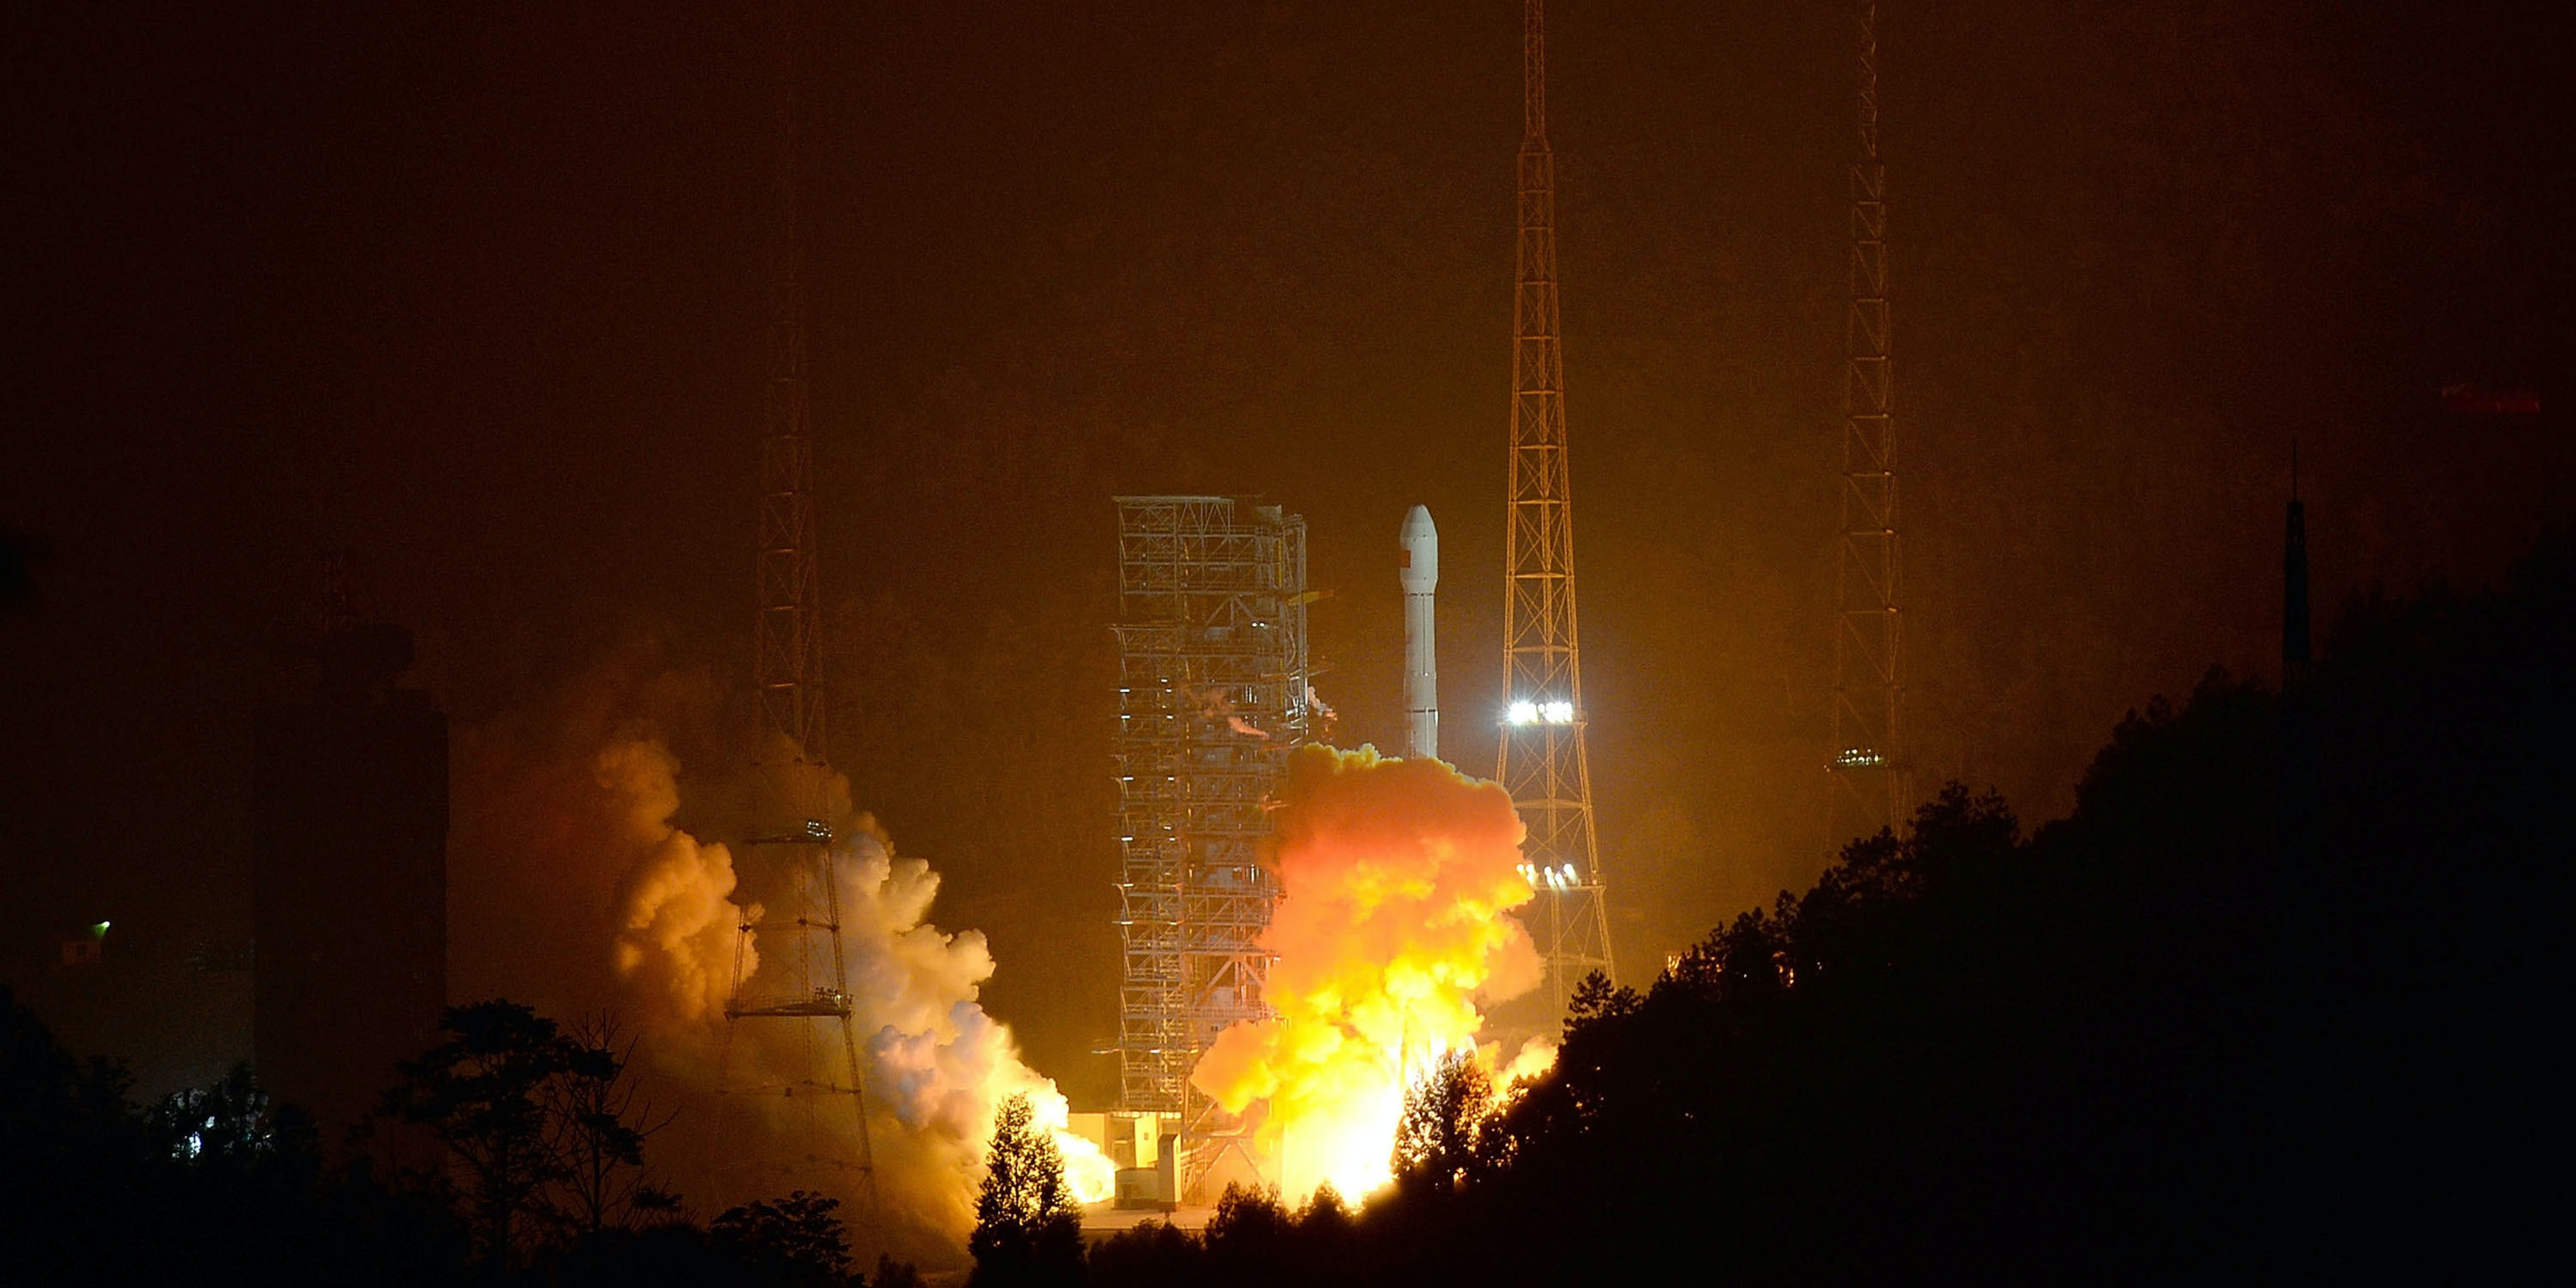 XICHANG, CHINA - DECEMBER 02:  (CHINA OUT) A Long March-3B carrier rocket carrying China's Chang'e-3 lunar probe takes off from the Xichang Satellite Launch Center on December 2, 2013 in Xichang, China. China successfully sent the Chang'e-3 lunar probe with its first moon rover aboard into orbit on Monday morning.  (Photo by VCG/VCG via Getty Images)